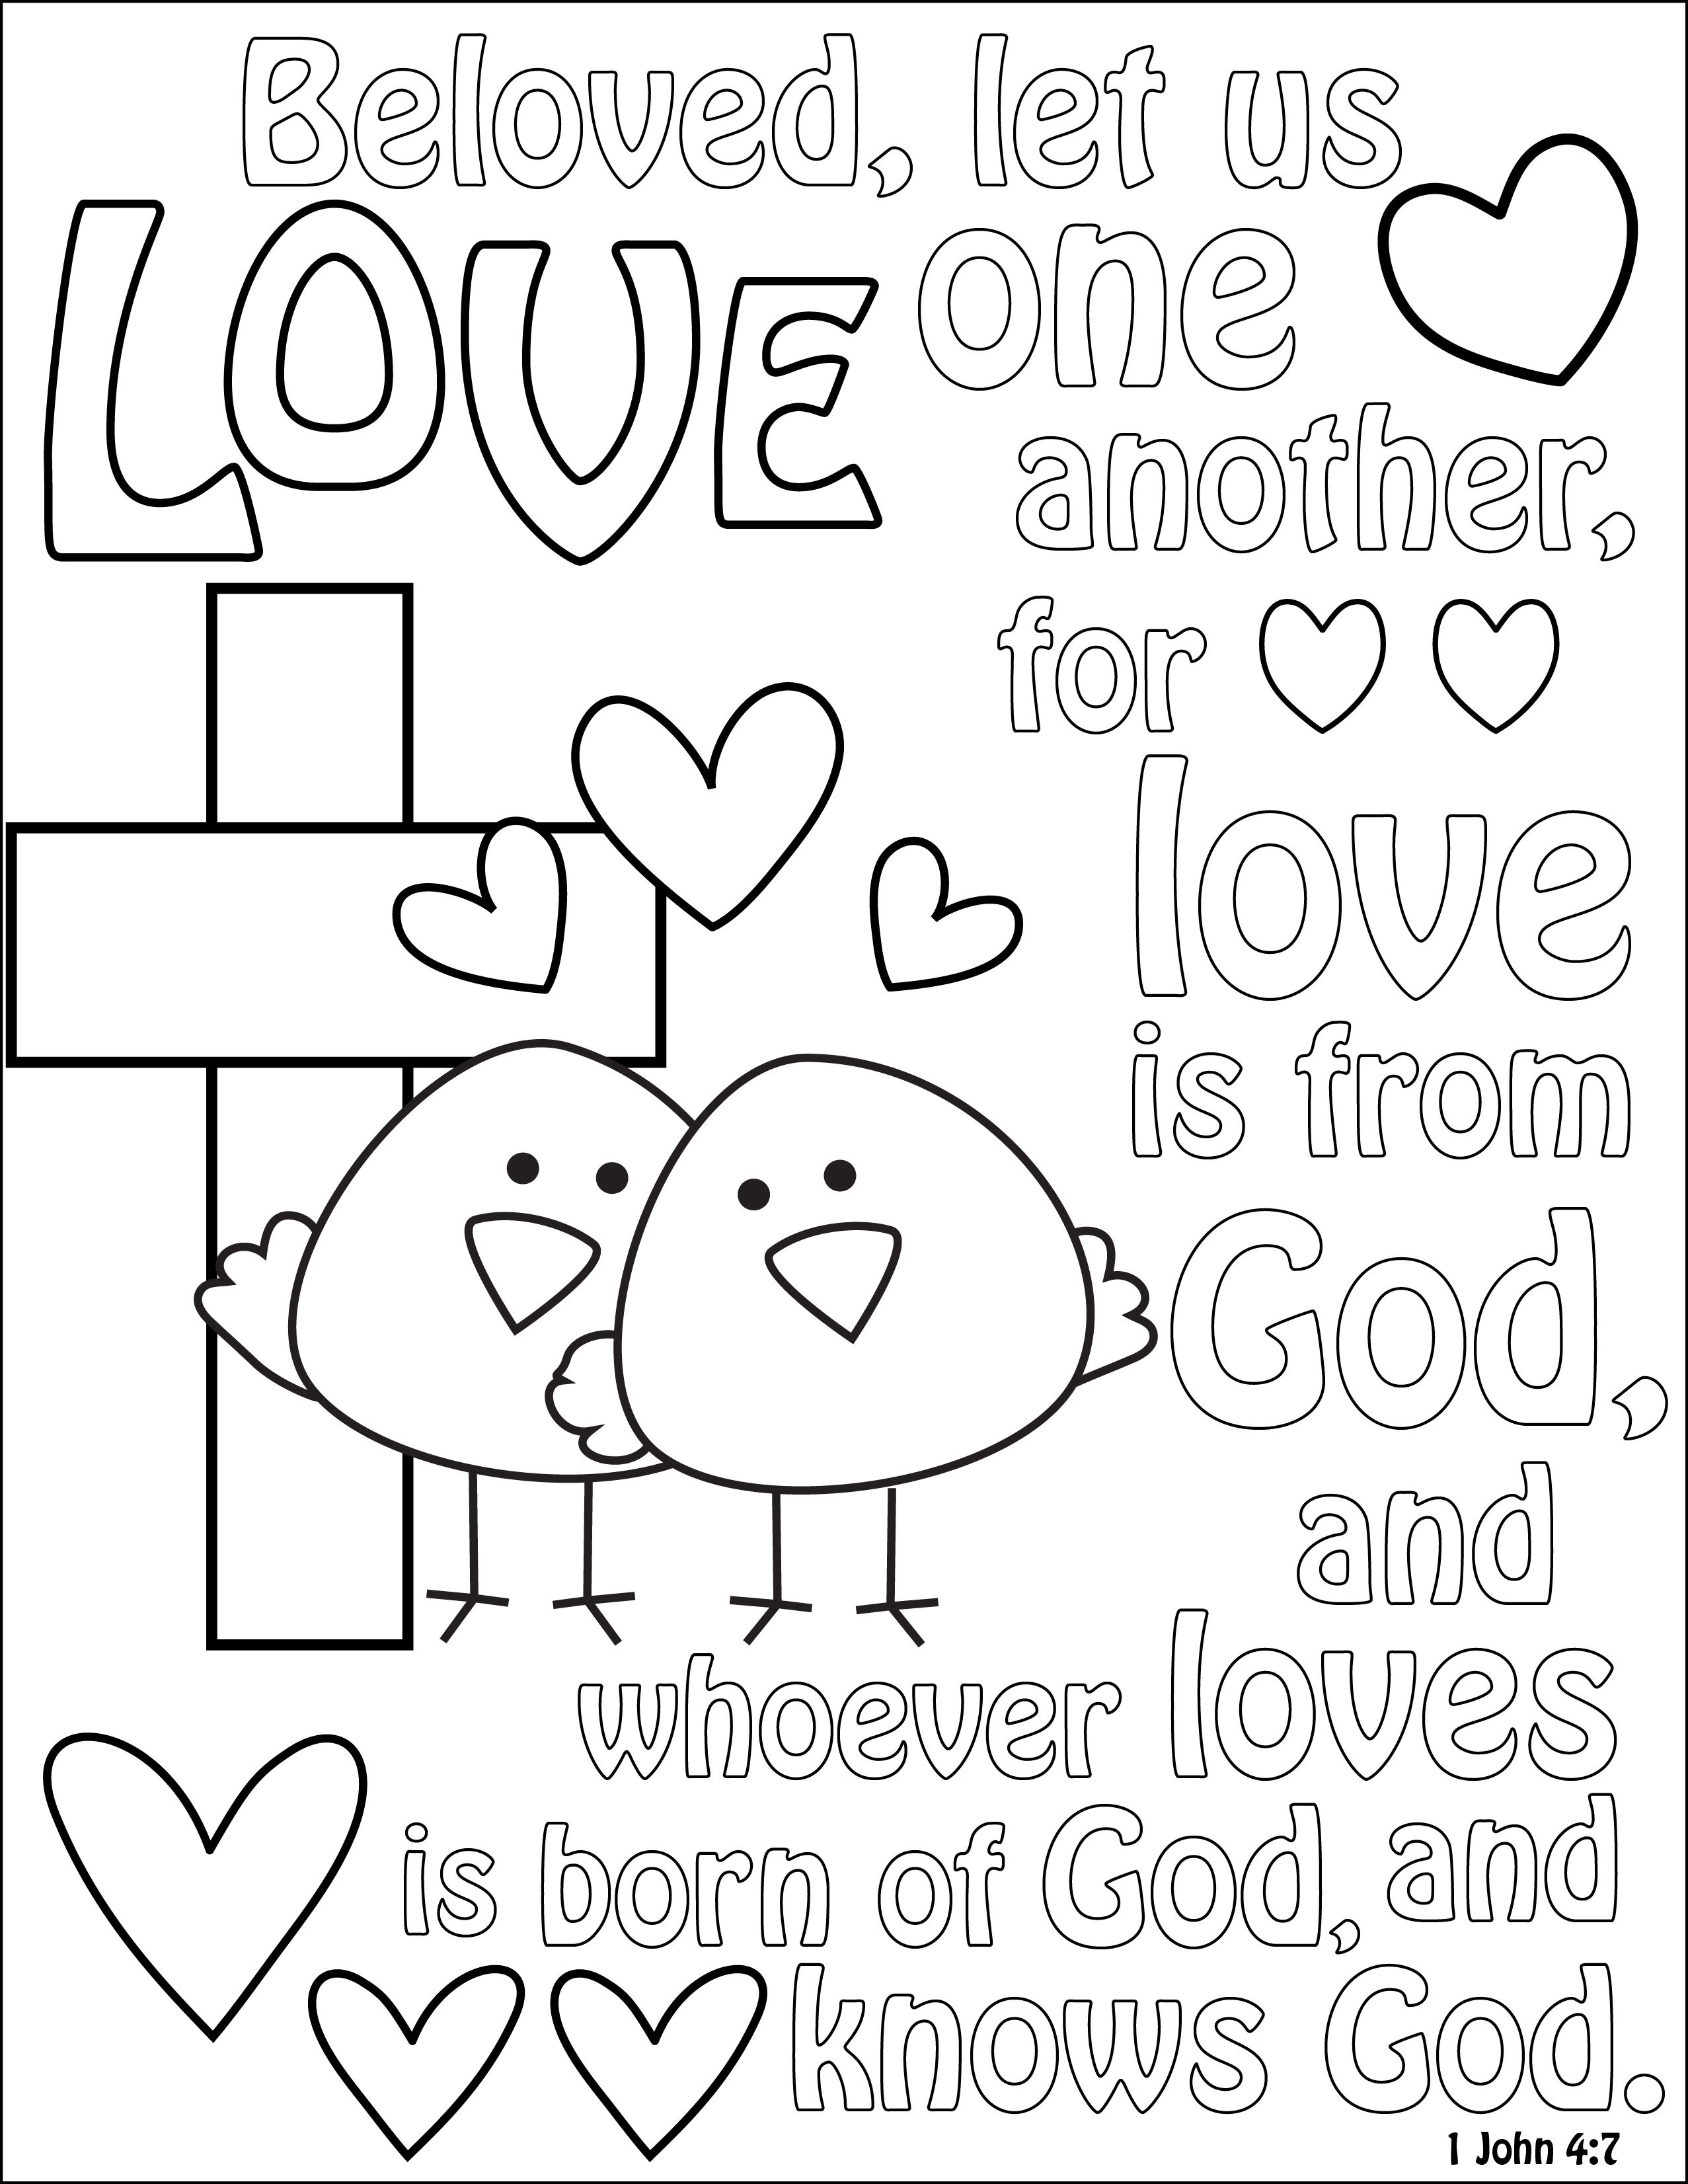 biblical coloring pages bible coloring pages coloringrocks coloring pages biblical 1 1